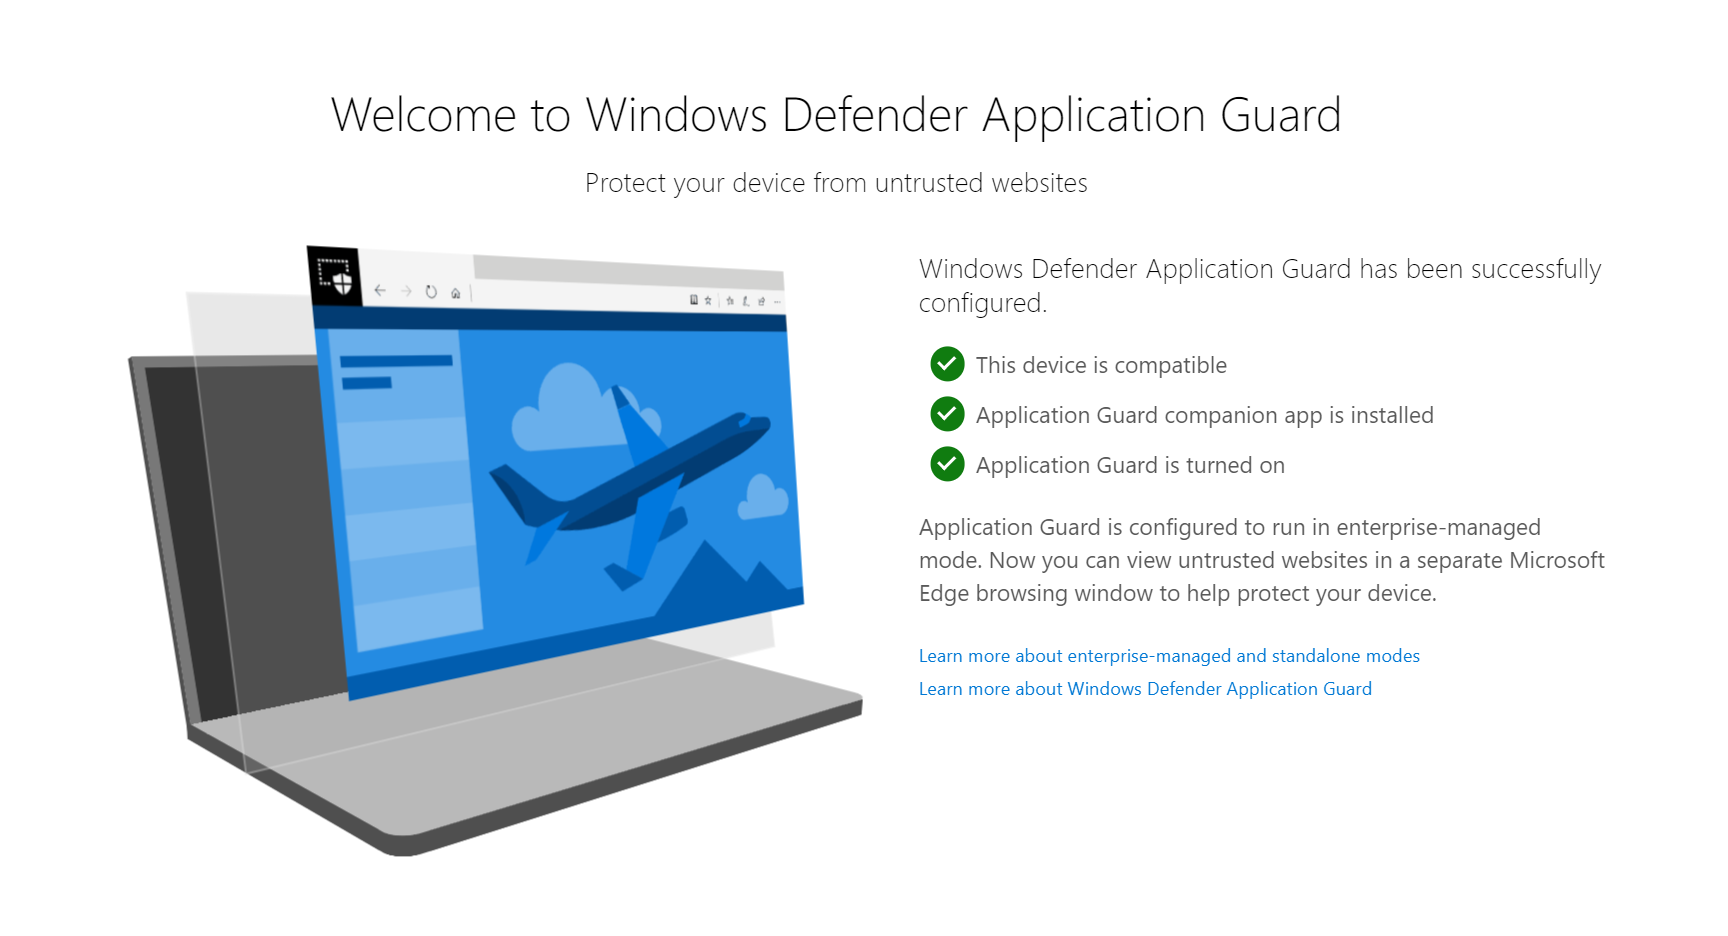 Users will see a Windows Defender Application Guard landing page